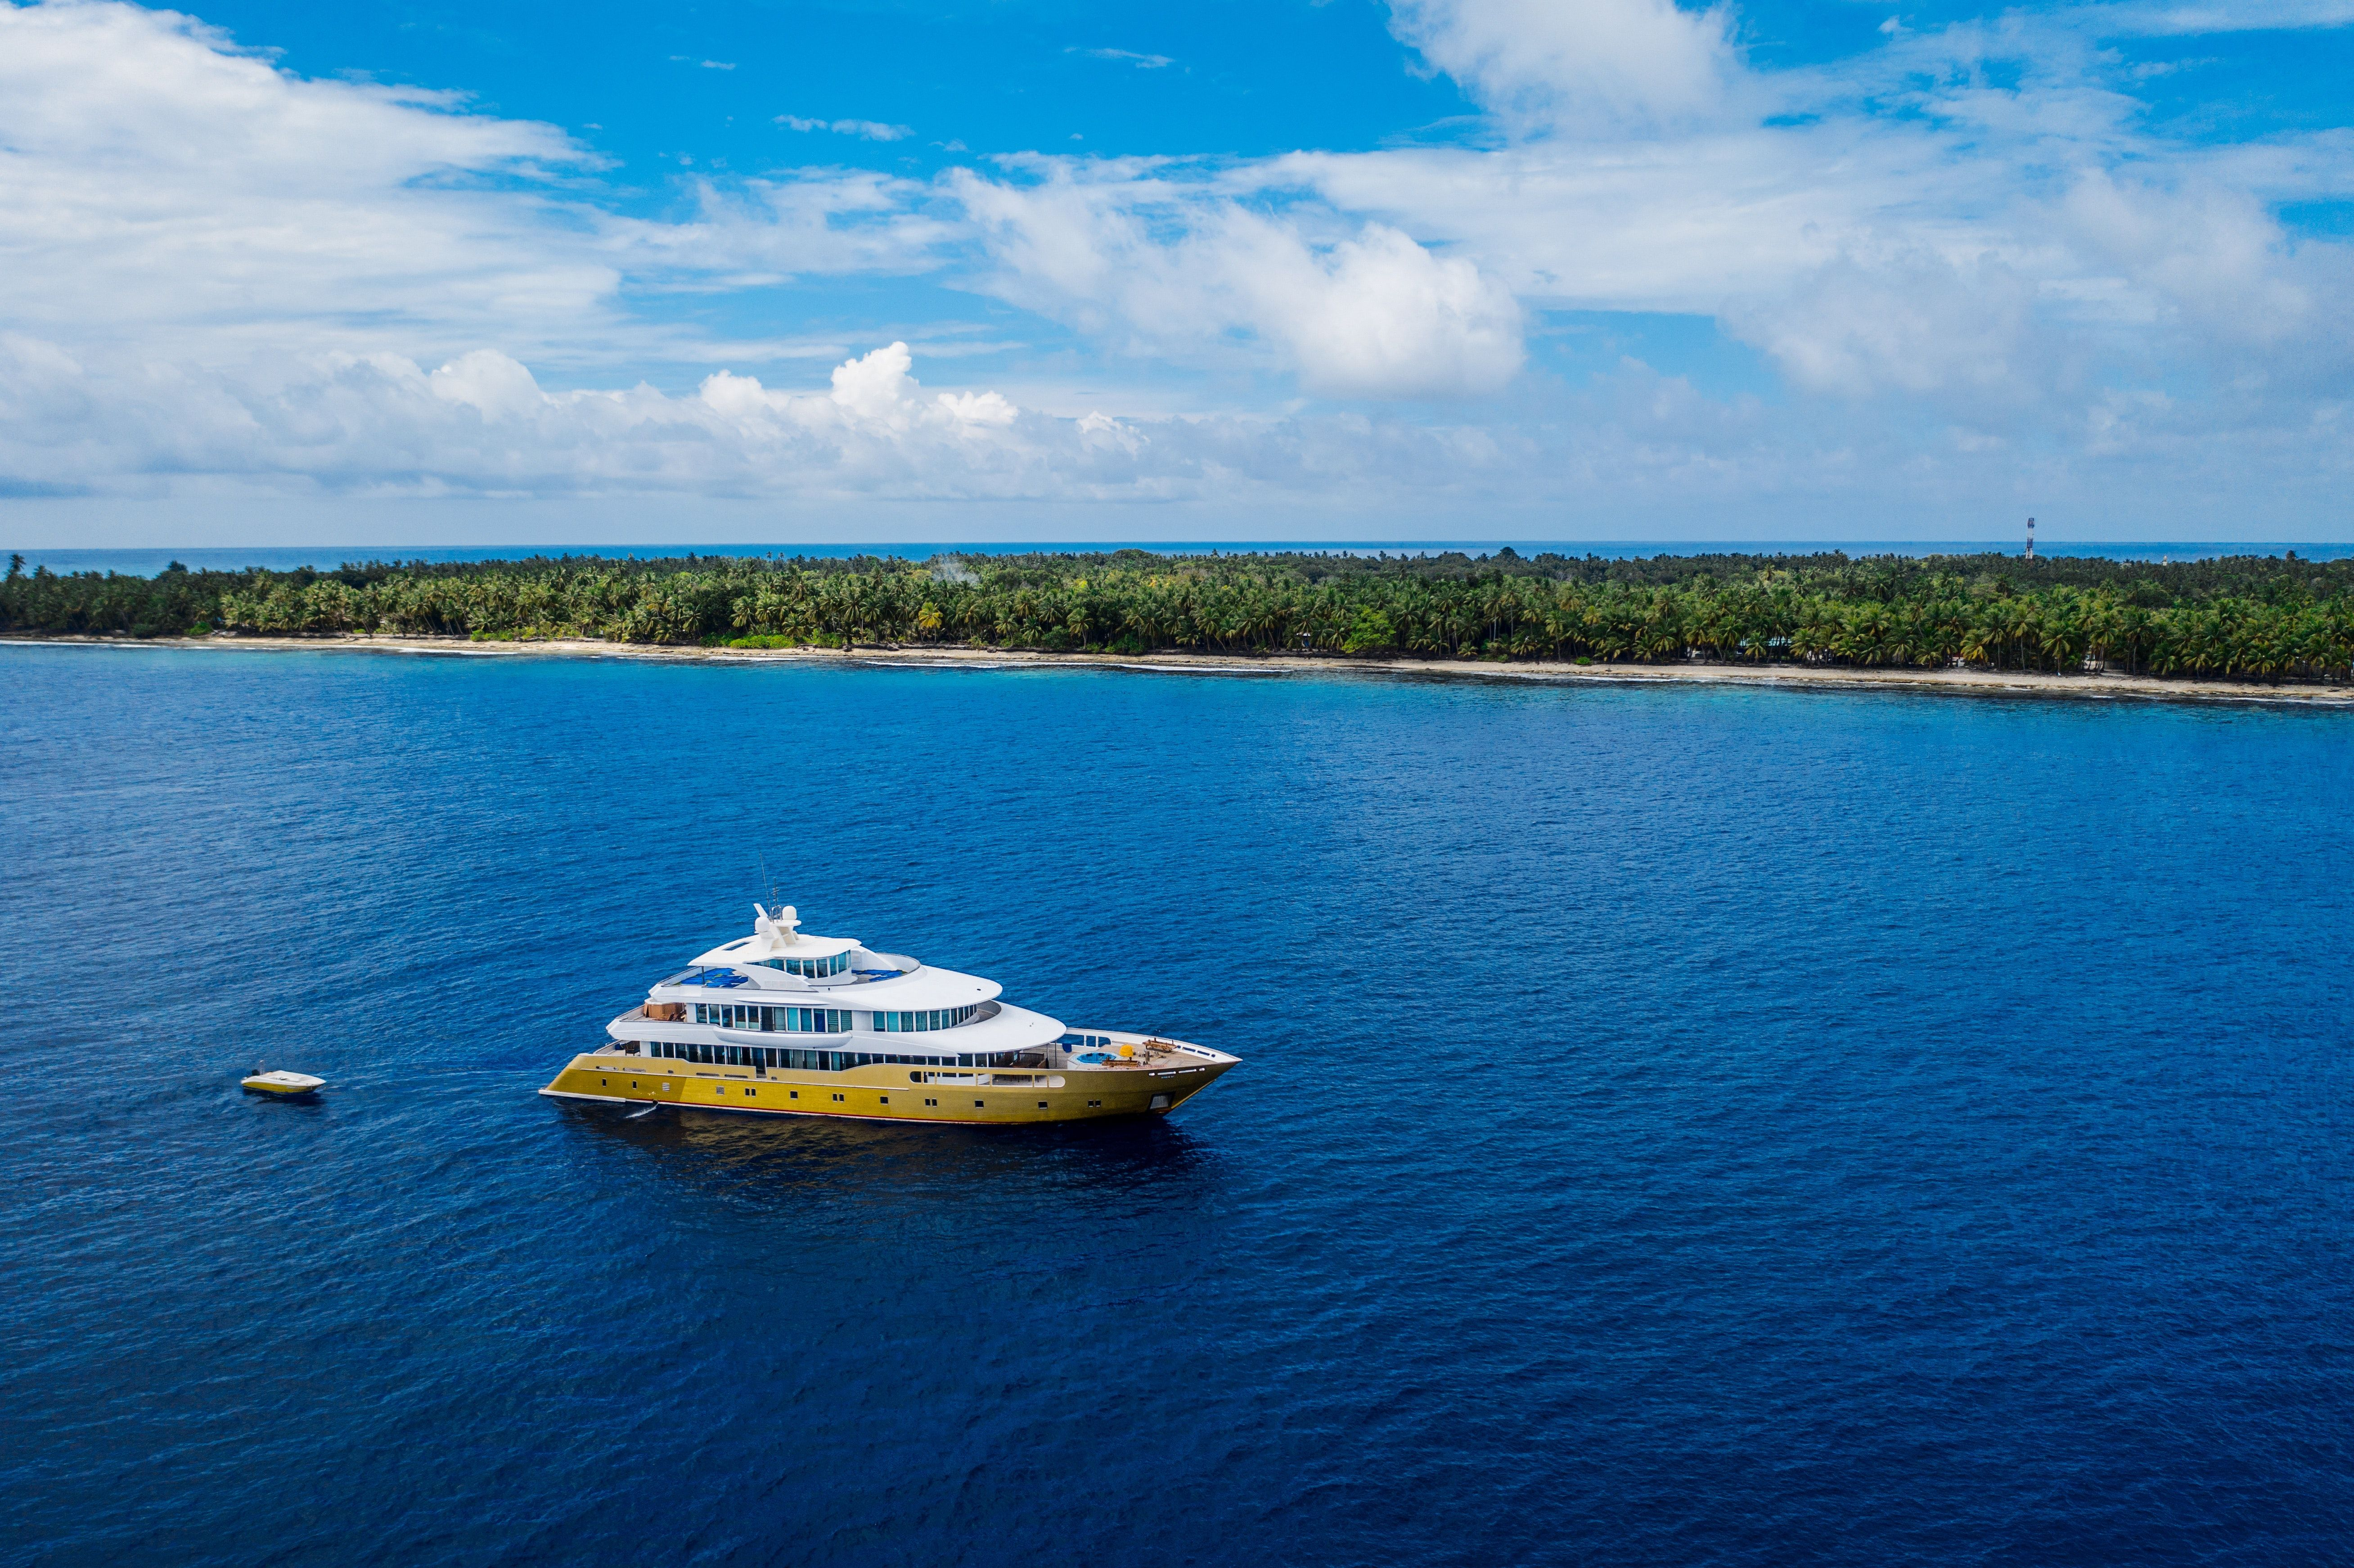 Jetdrift Pwc Magazine News Reviews Tools How To Boating Pictures Maldives Island How To Book A Cruise